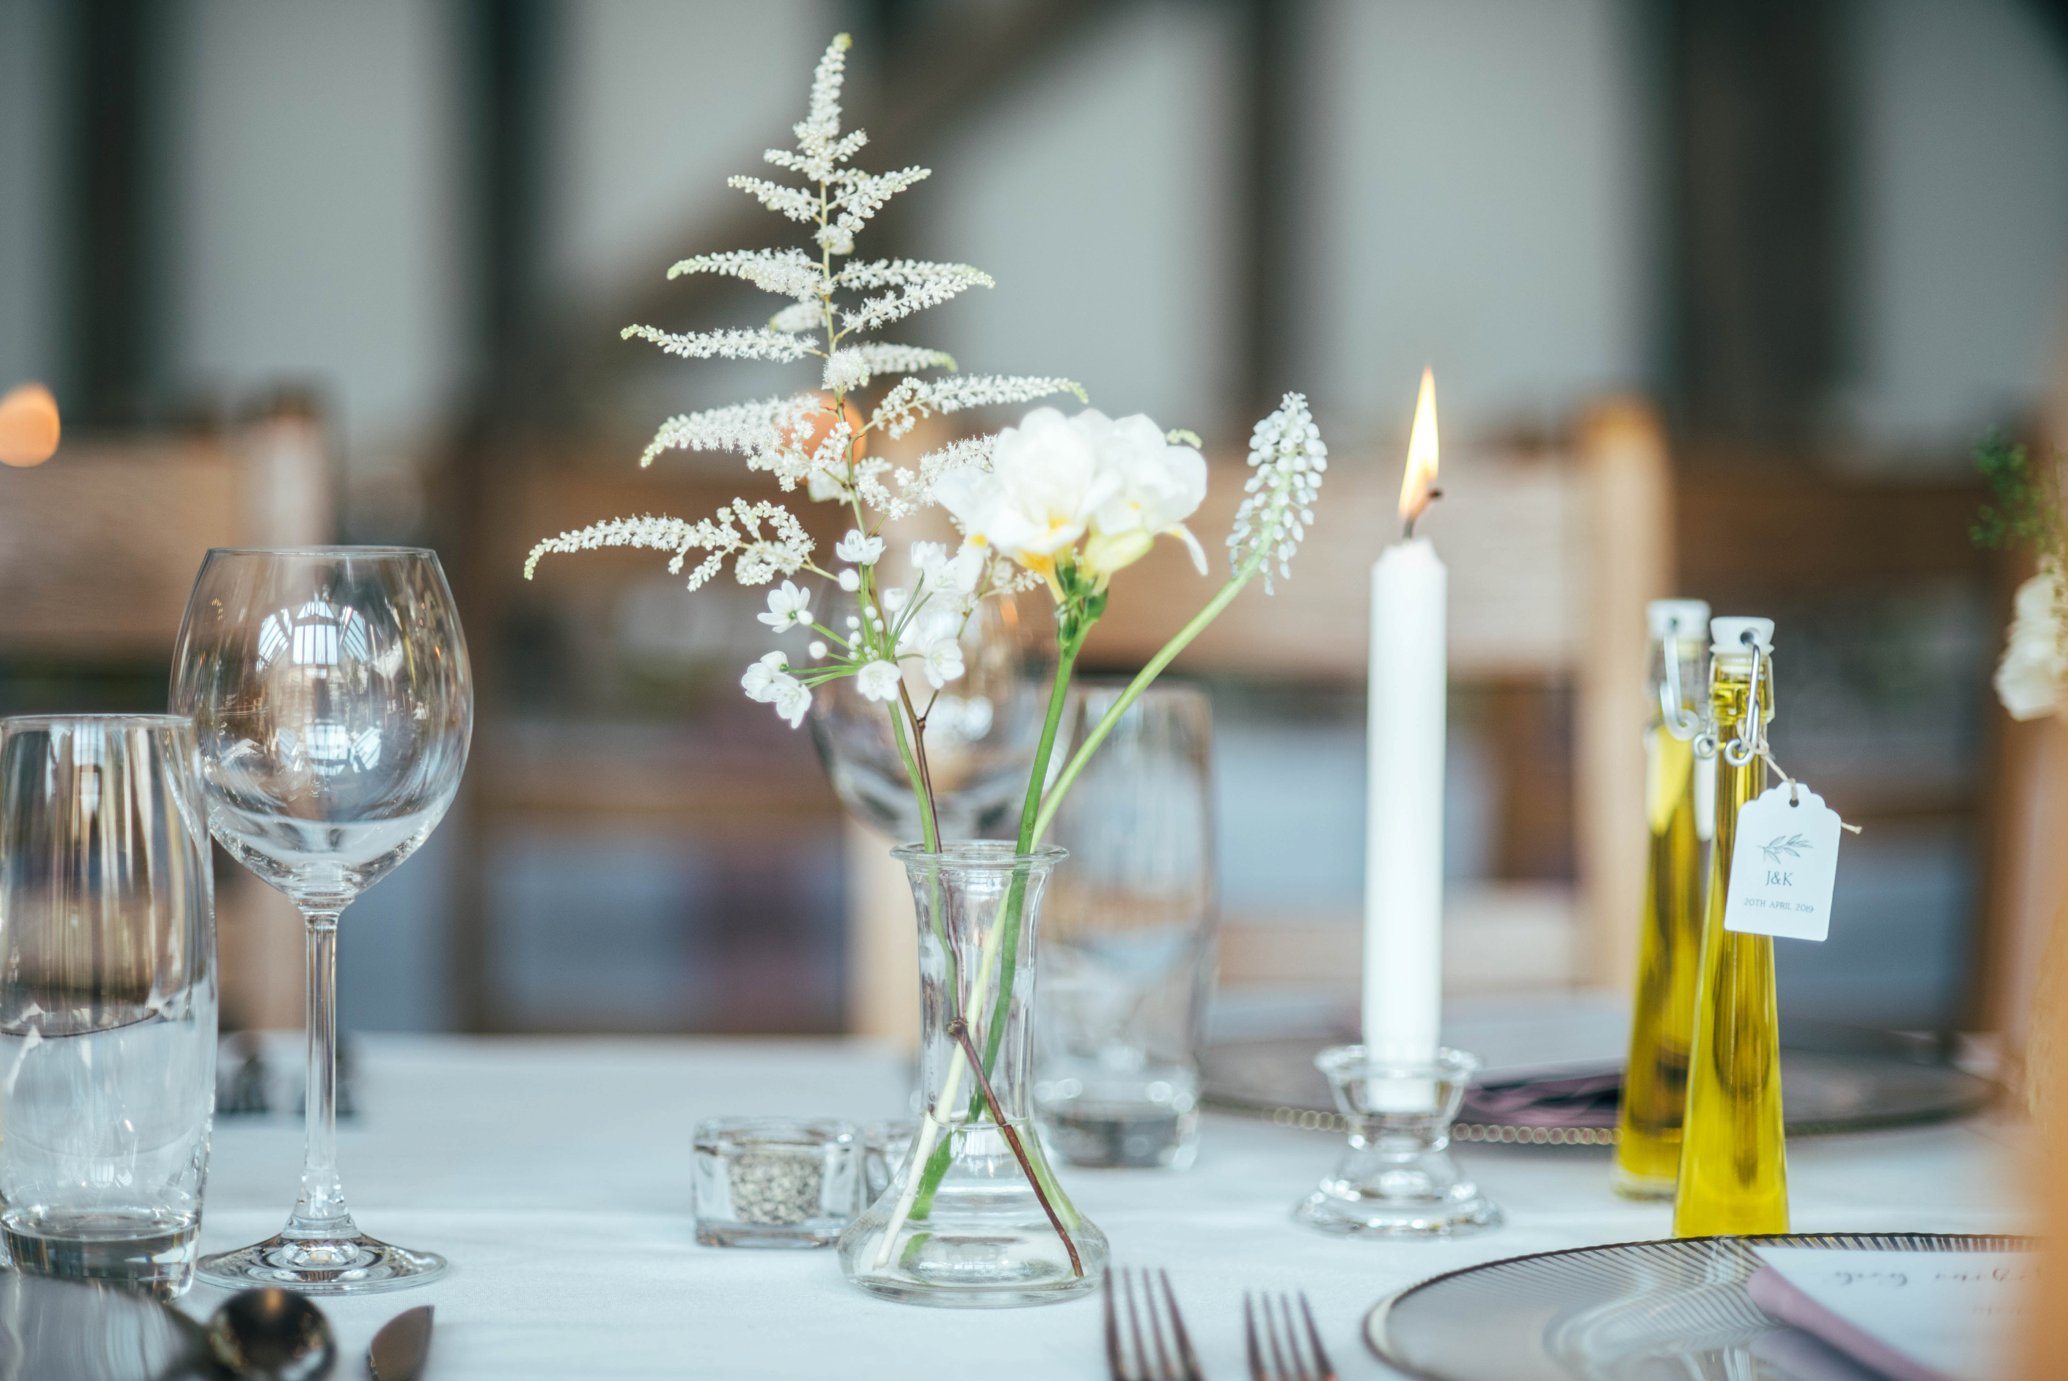 Greens & Whites for an Elegant Easter Wedding at Gate Street Barn with favours of Olive Oil from Bride's family house in France. Bride wears Watters. Essex Documentary Wedding Photographer.